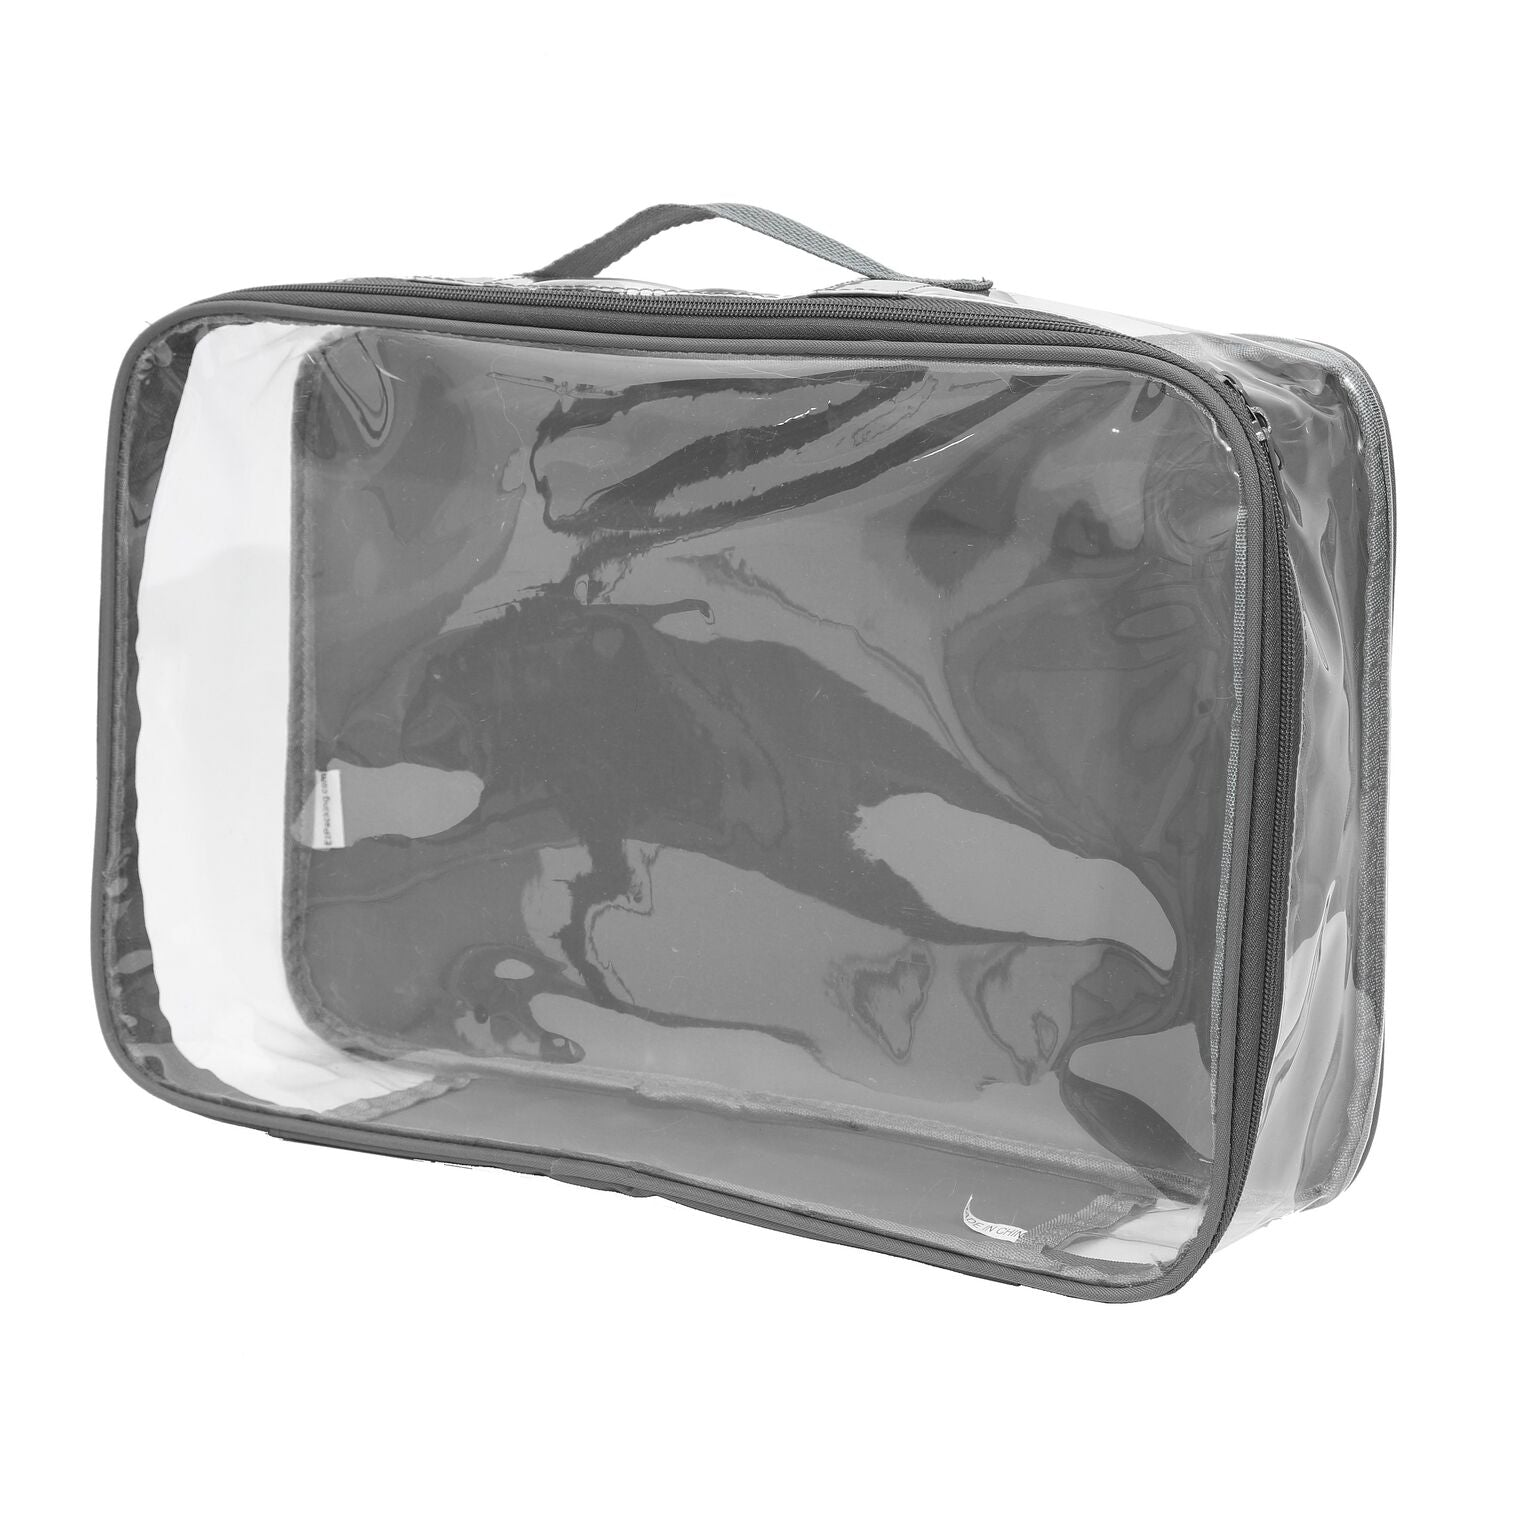 Large travel cube in gray